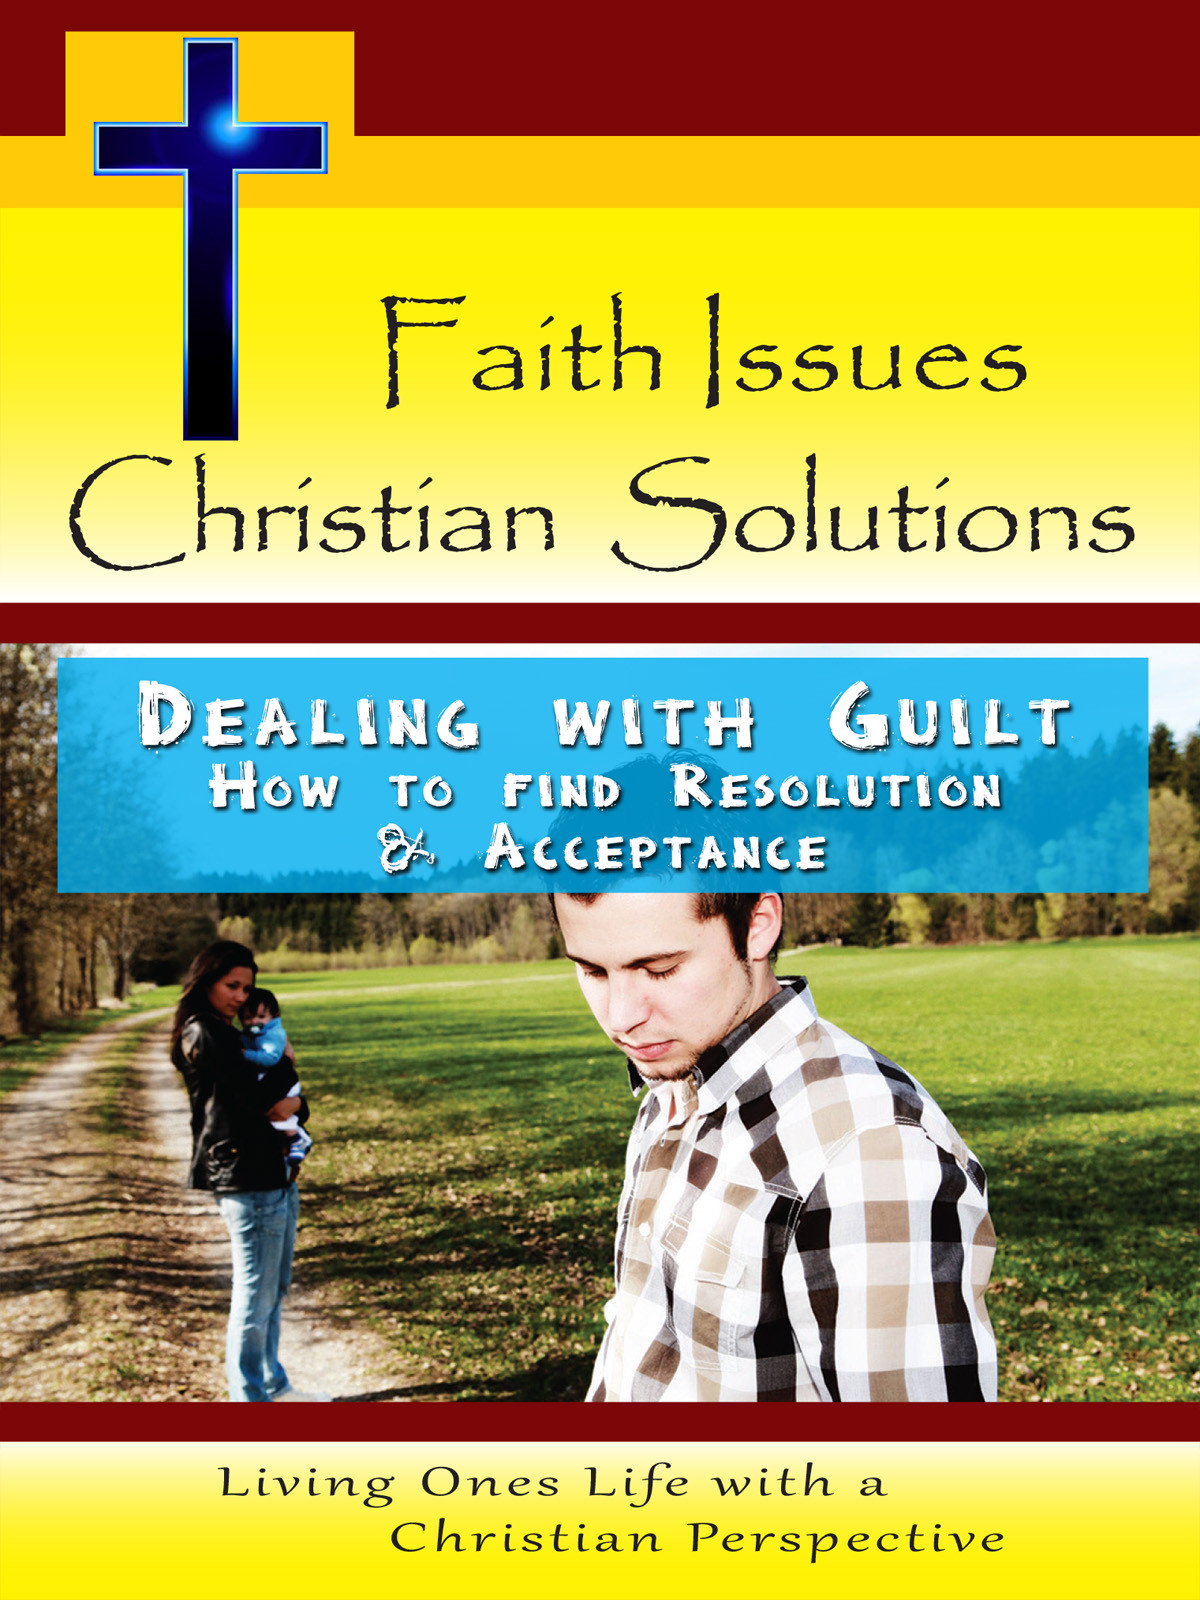 CH10022 - Dealing with Guilt How to find Resolution & Acceptance